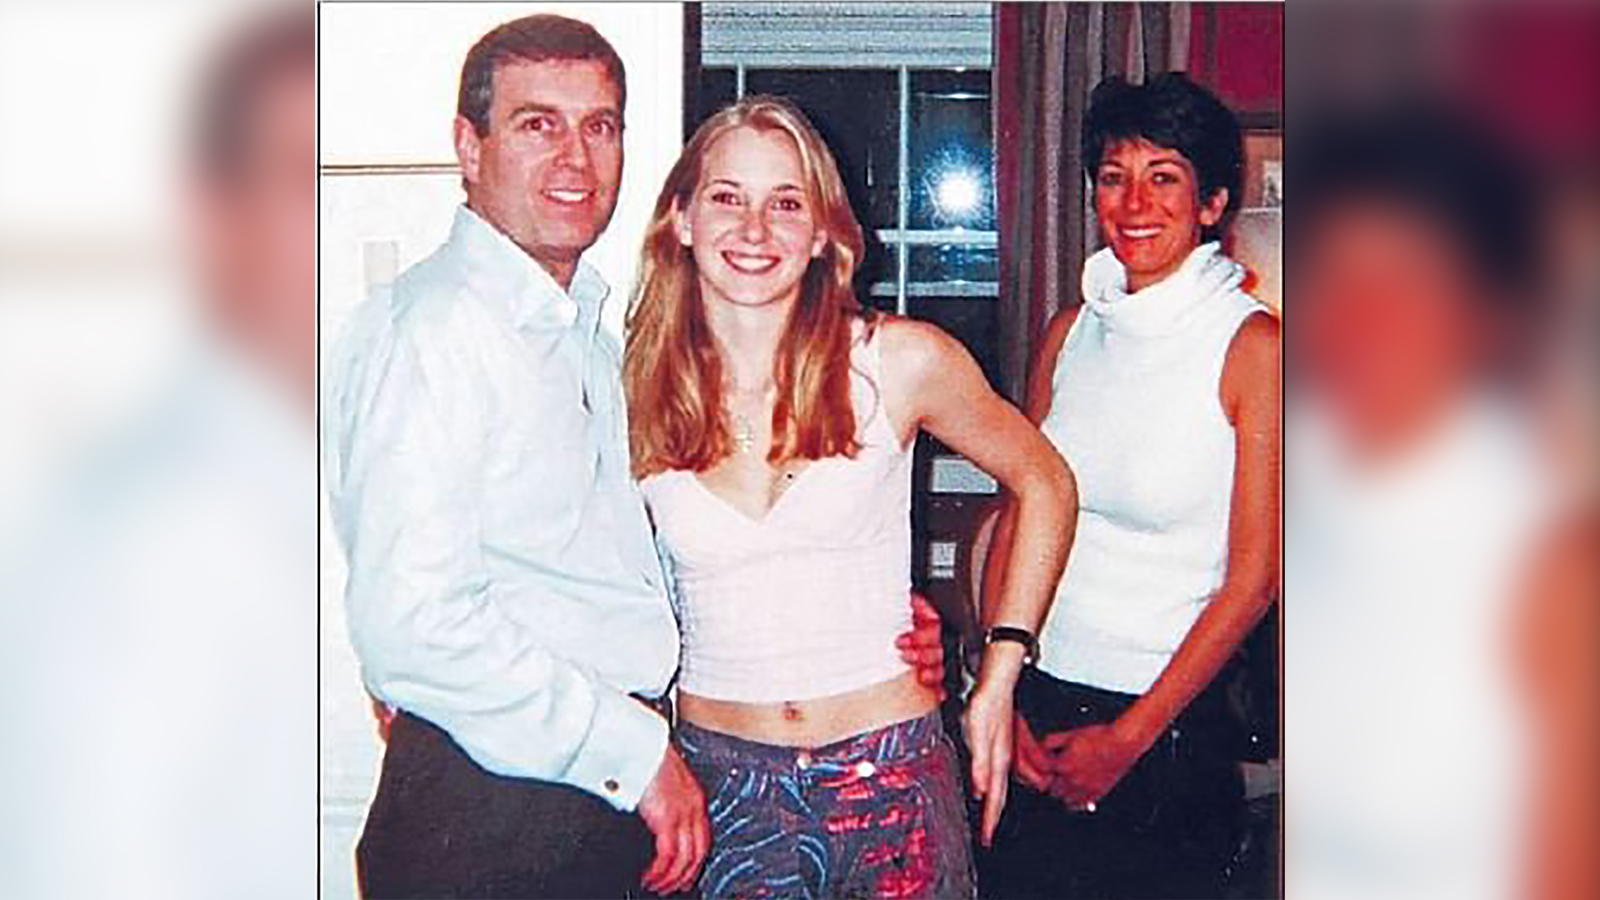 Photograph appearing to show Prince Andrew Duke York with Jeffrey Epstein's accuser Virgina Guifre and alleged madam Ghislaine Maxwell (Florida Southern District Court)